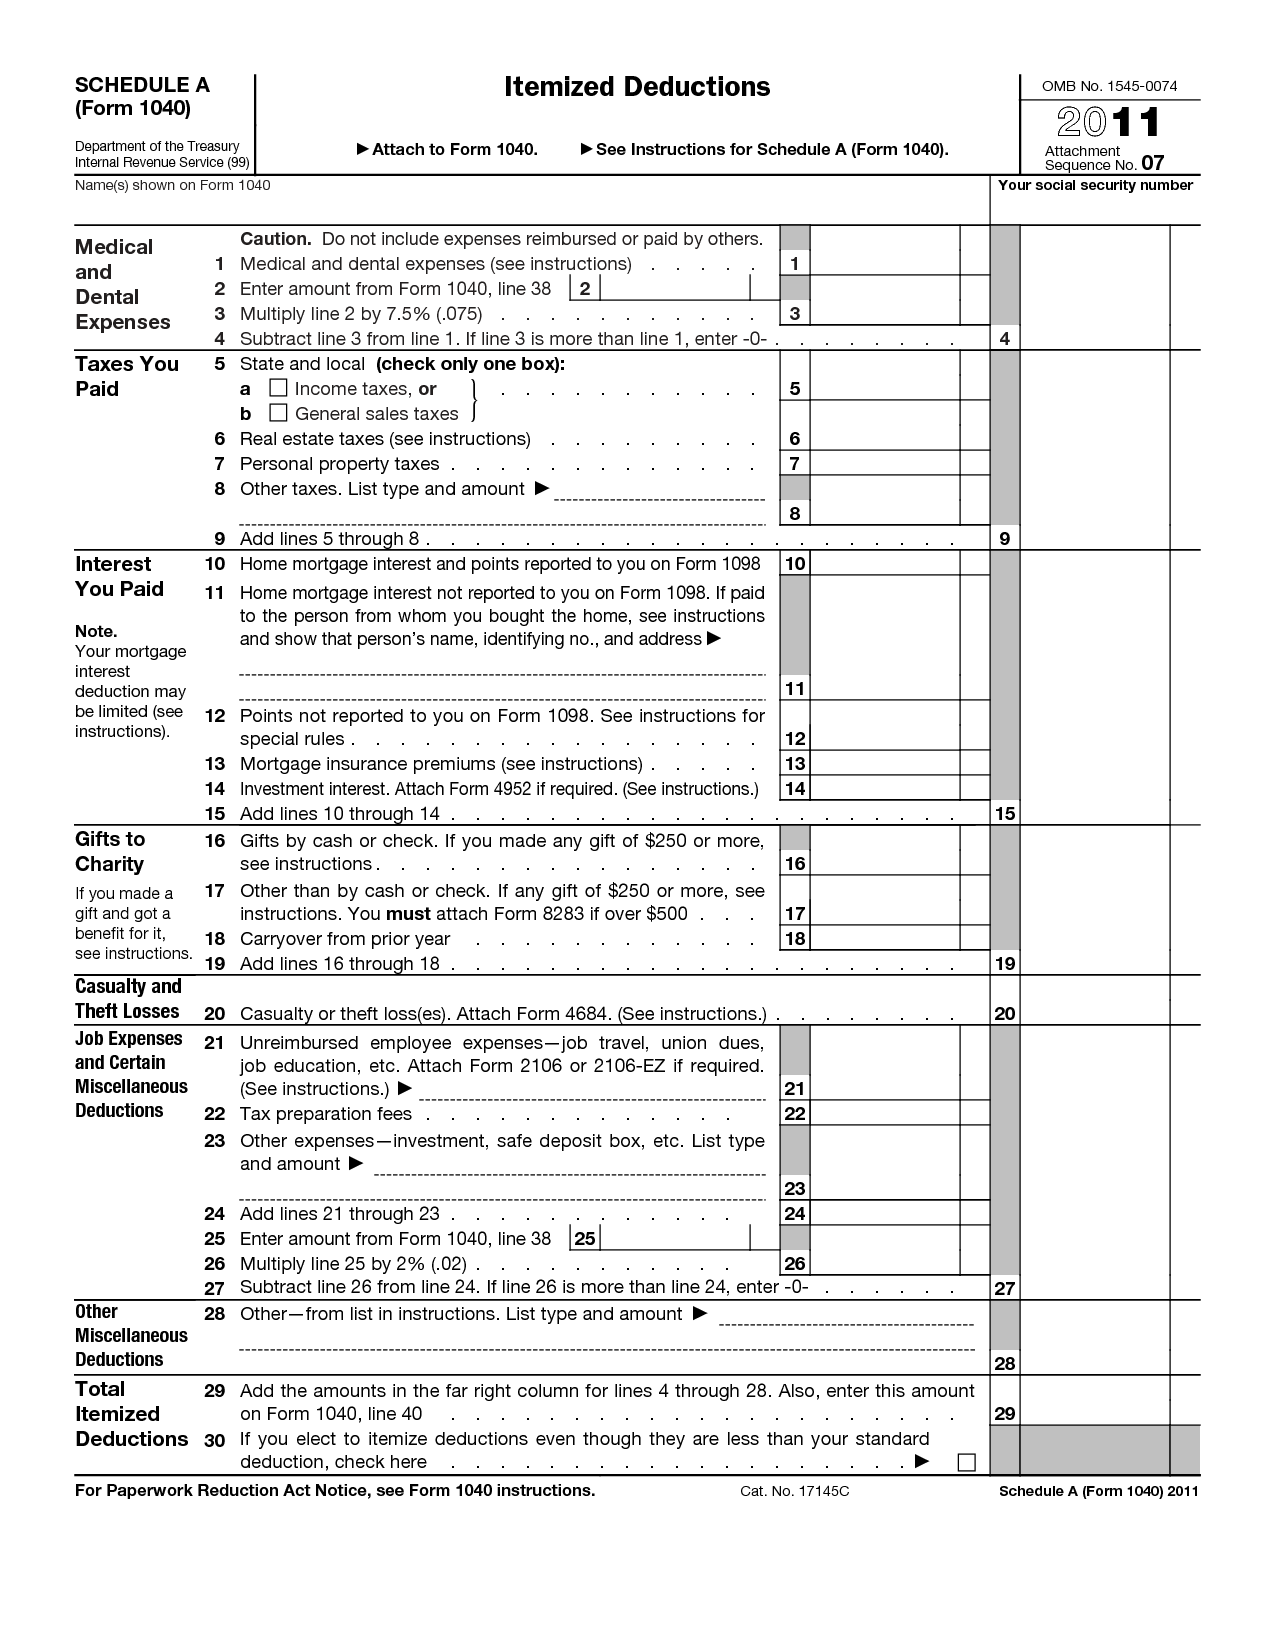 Schedule D Tax Worksheet Continued